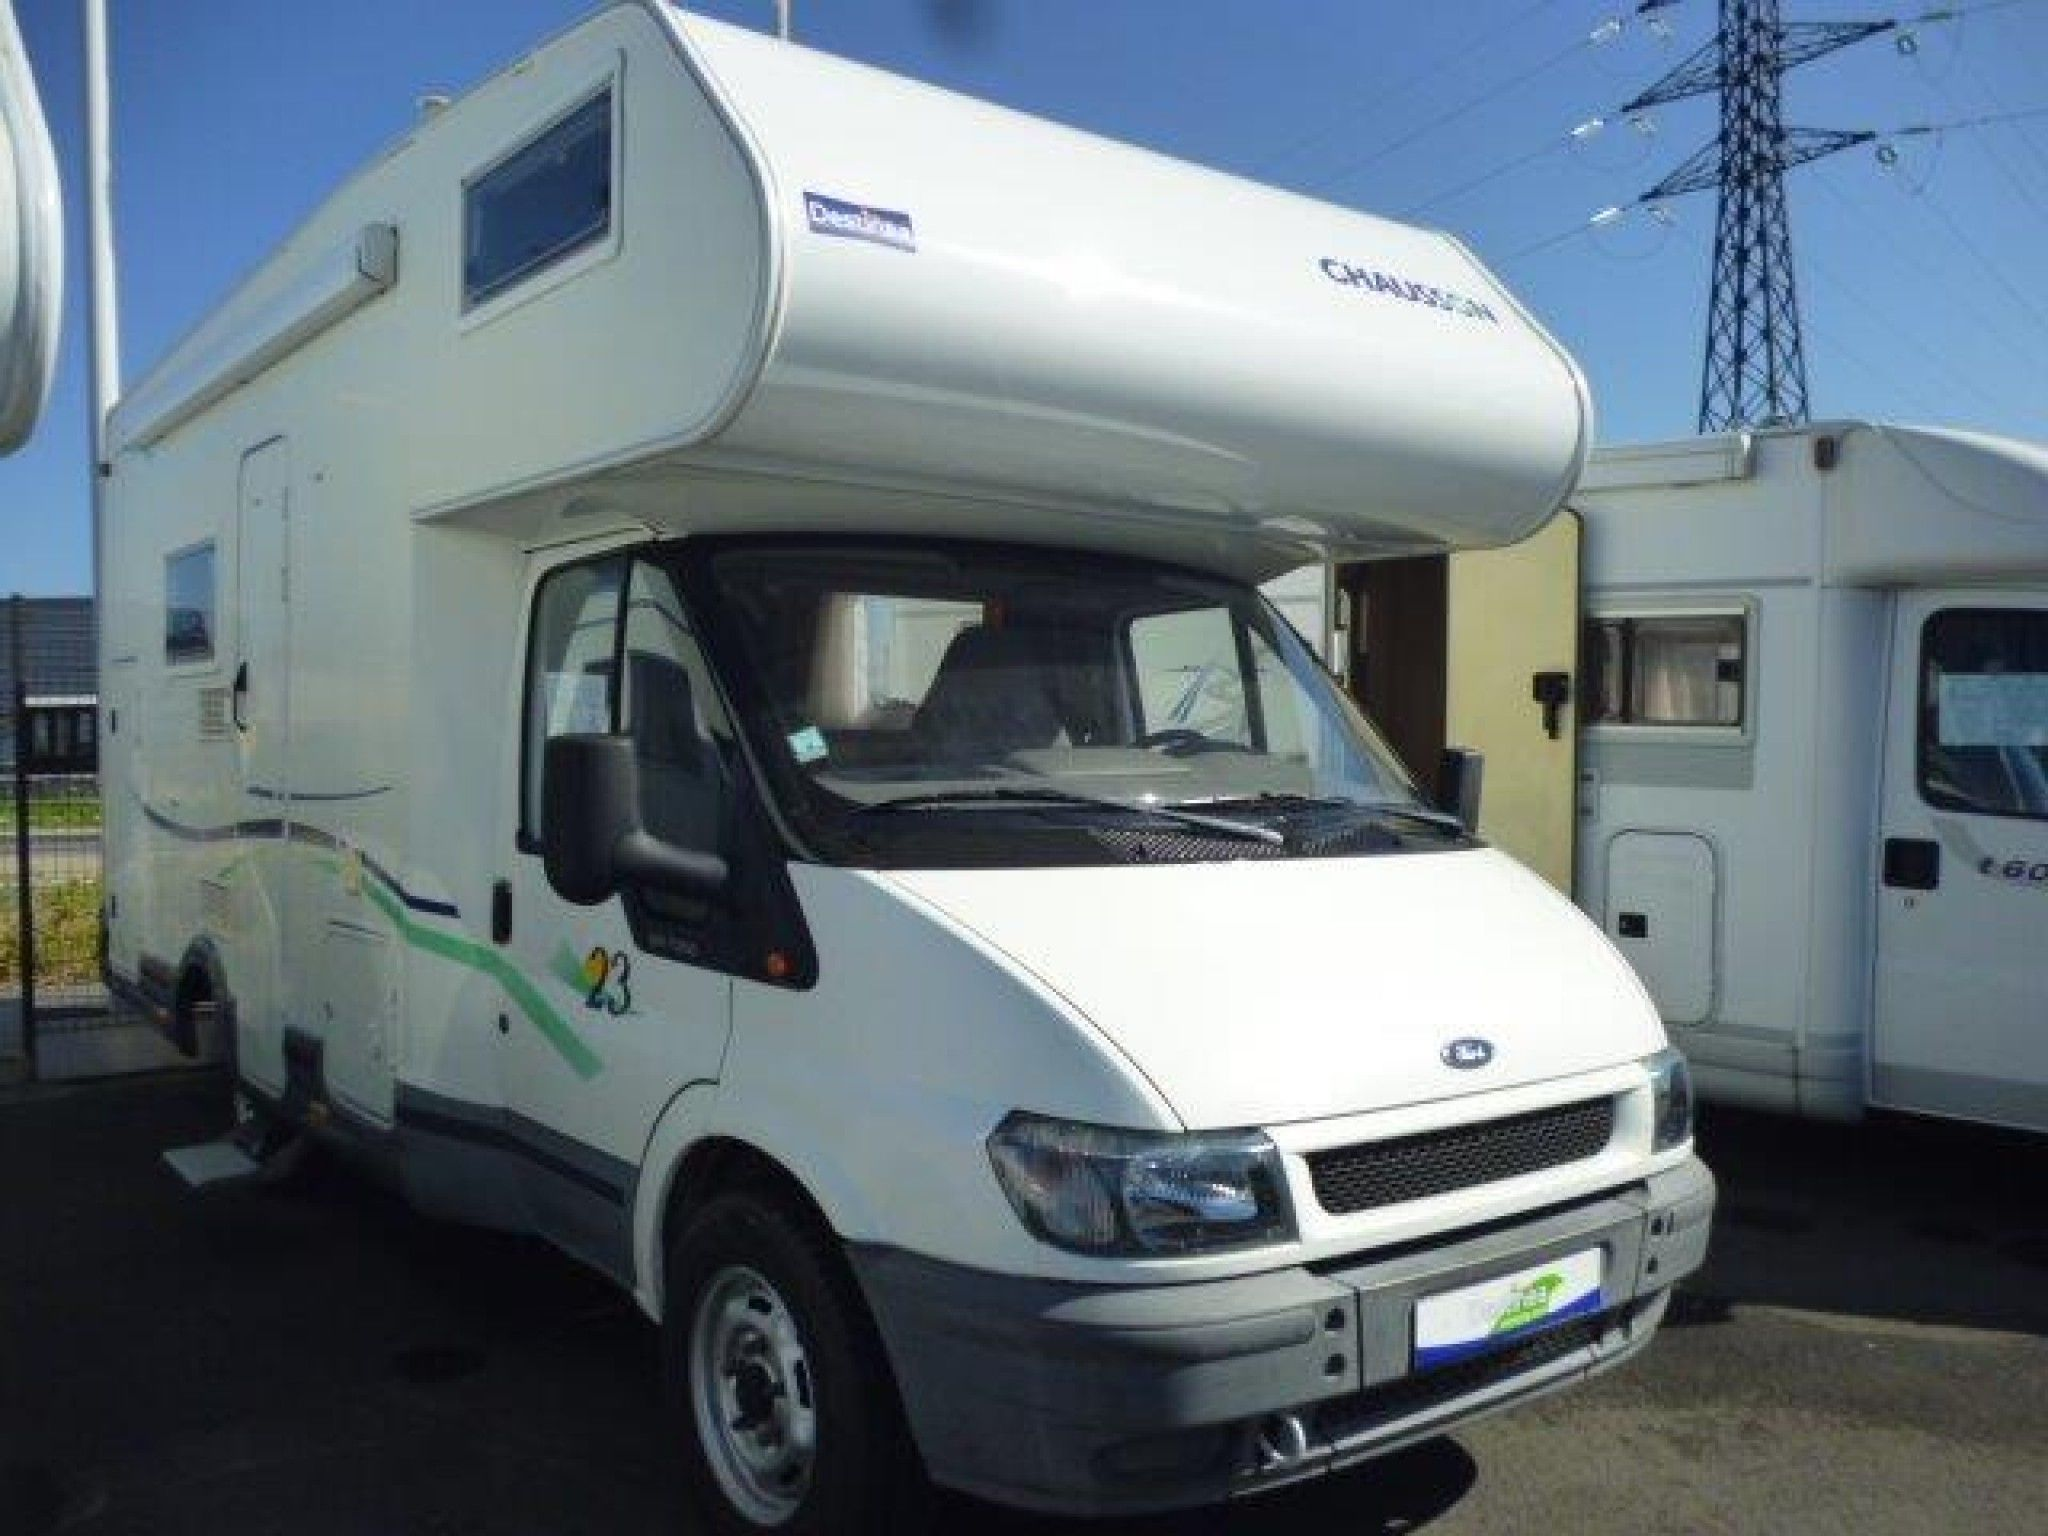 Chausson Welcome 23 - 1